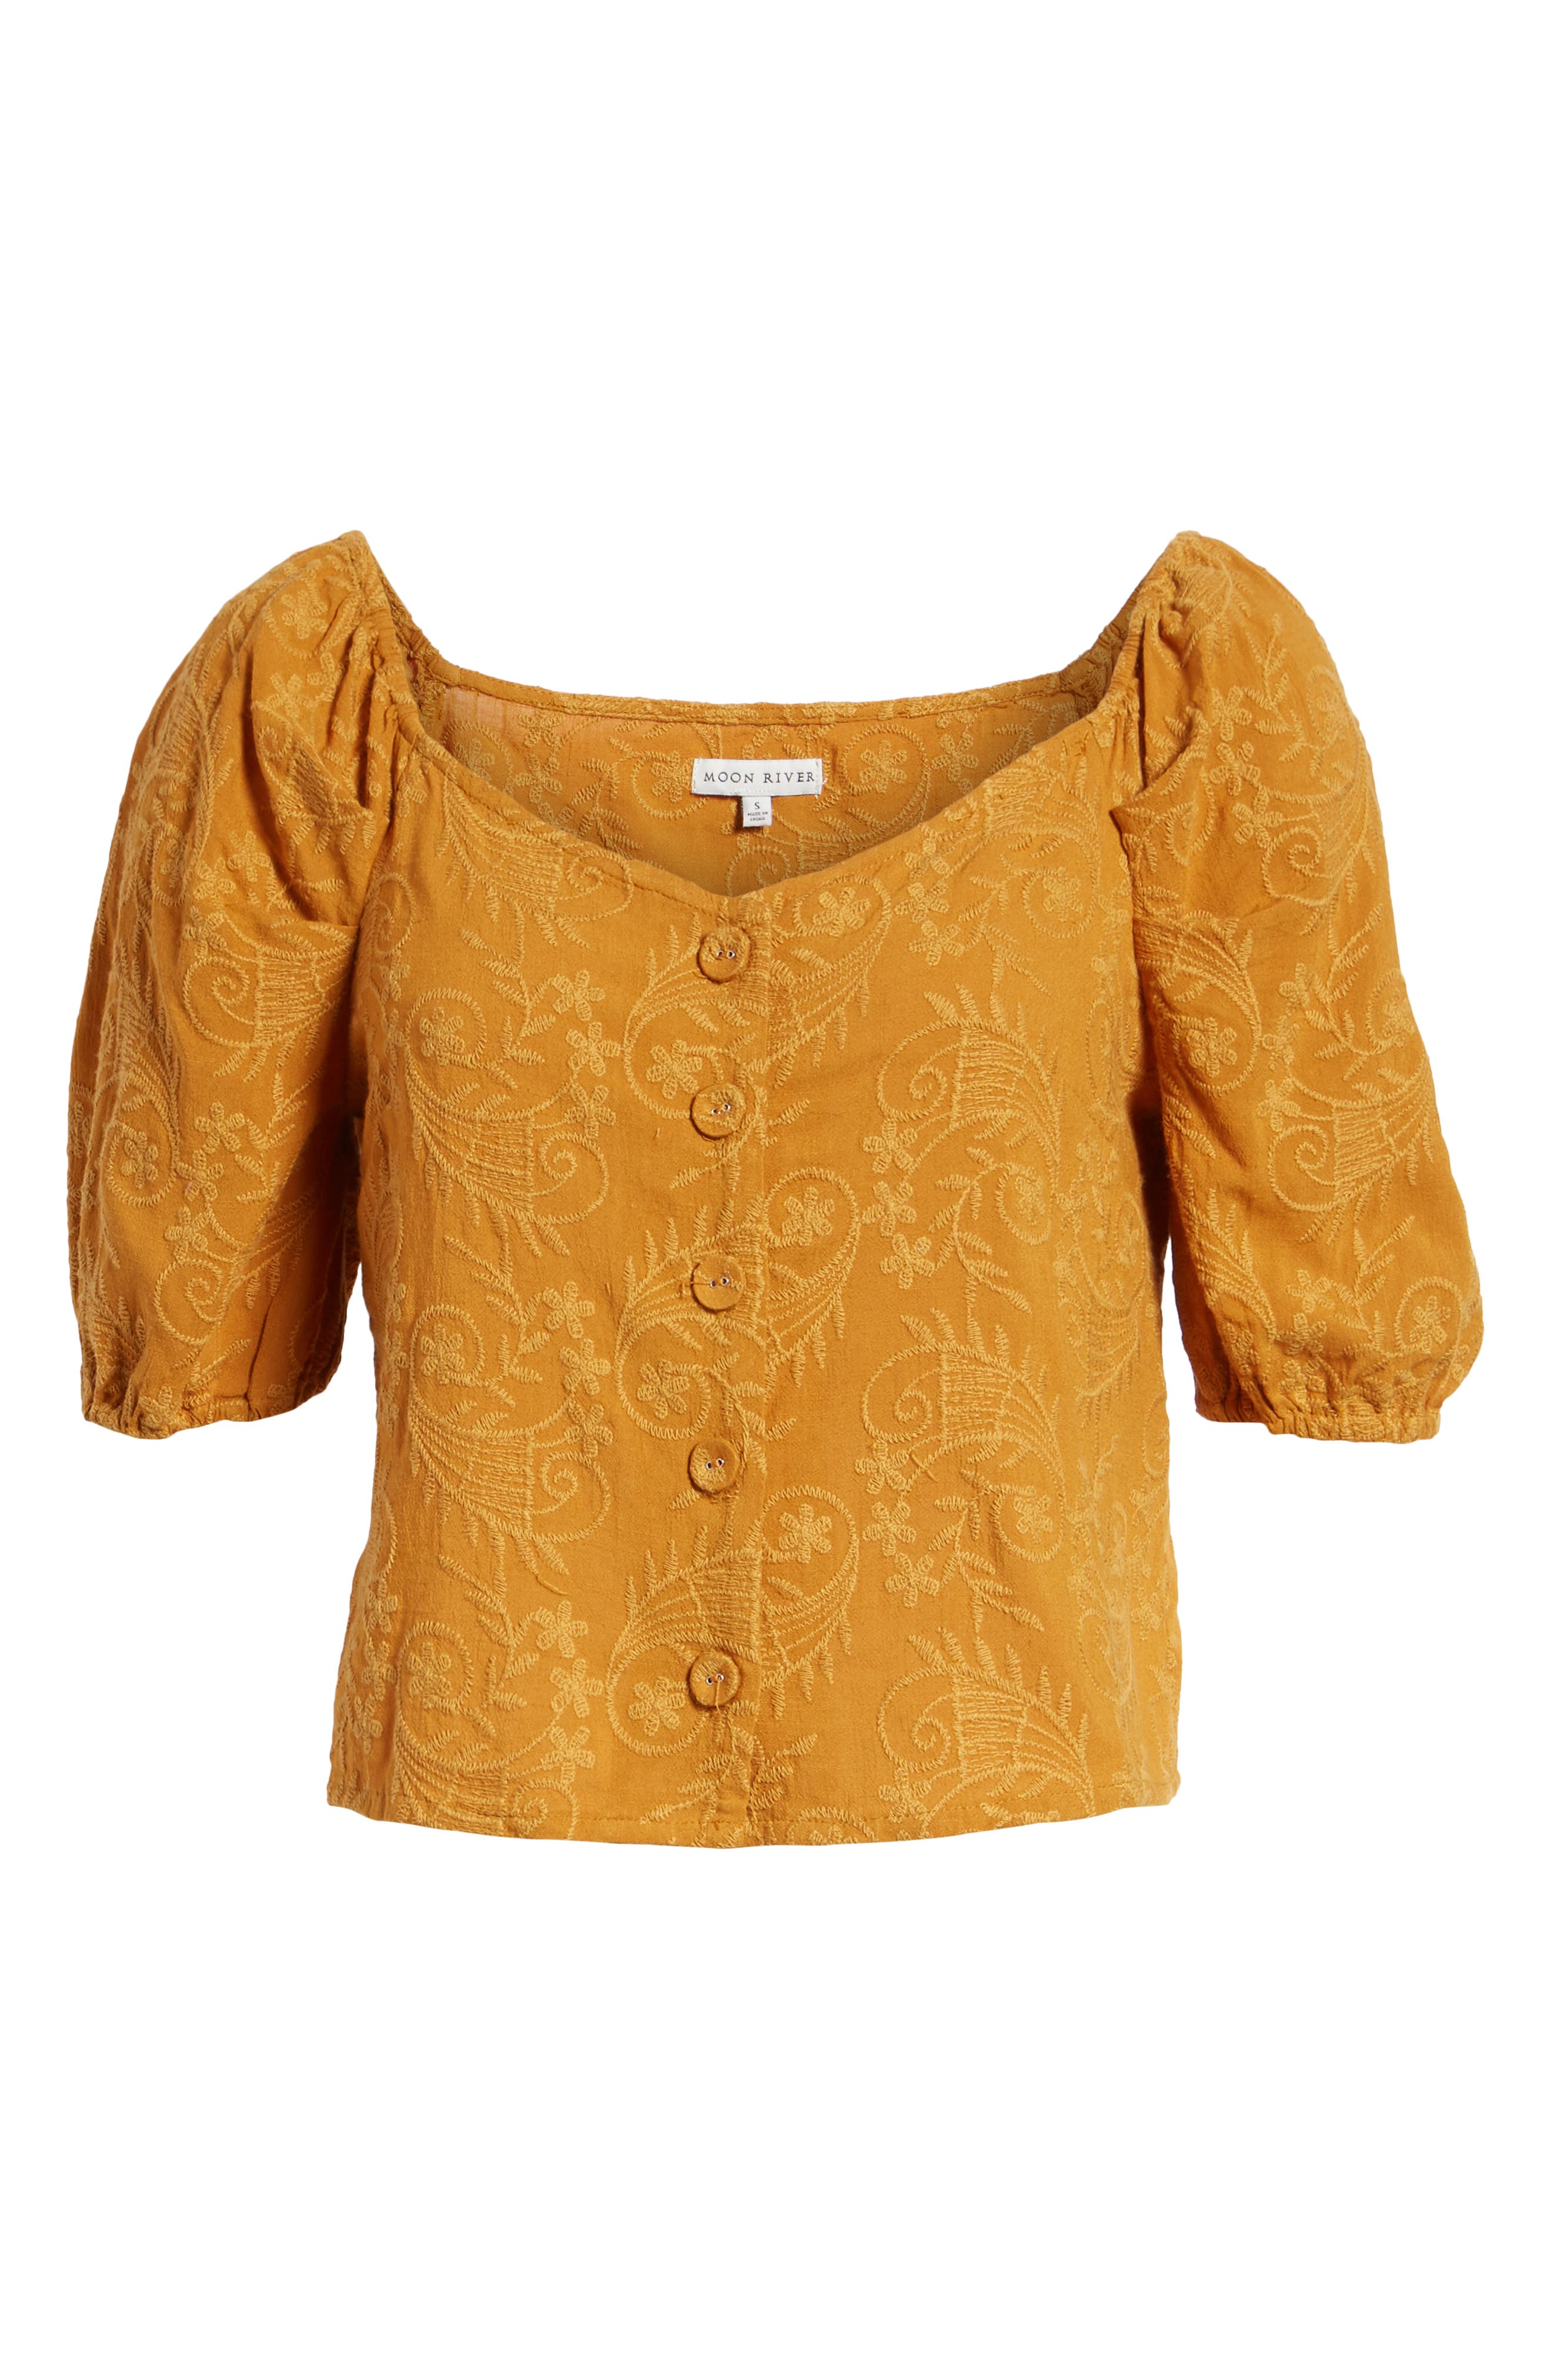 Embroidered Puff Sleeve Top,                             Alternate thumbnail 6, color,                             700